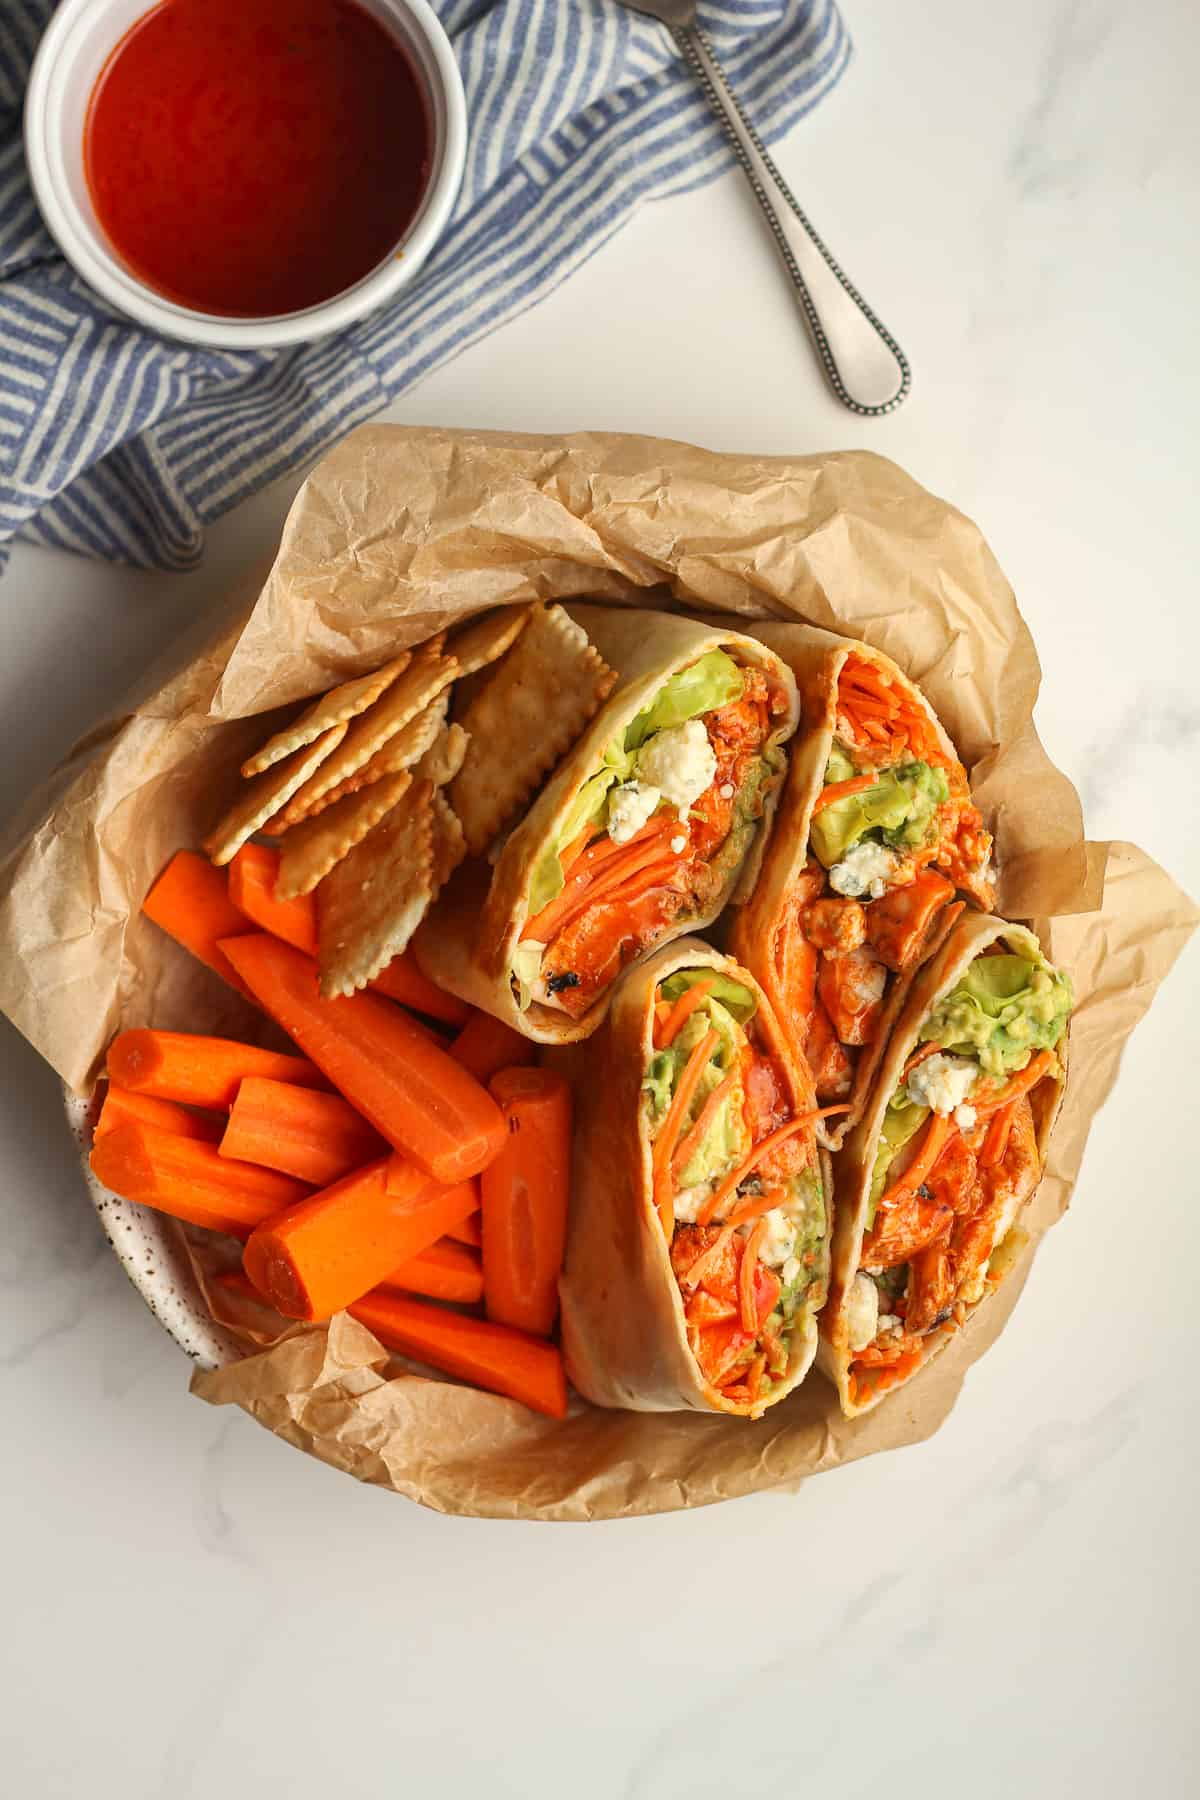 Overhead shot of a bowl of grilled buffalo chicken wraps, with a small bowl of sauce.